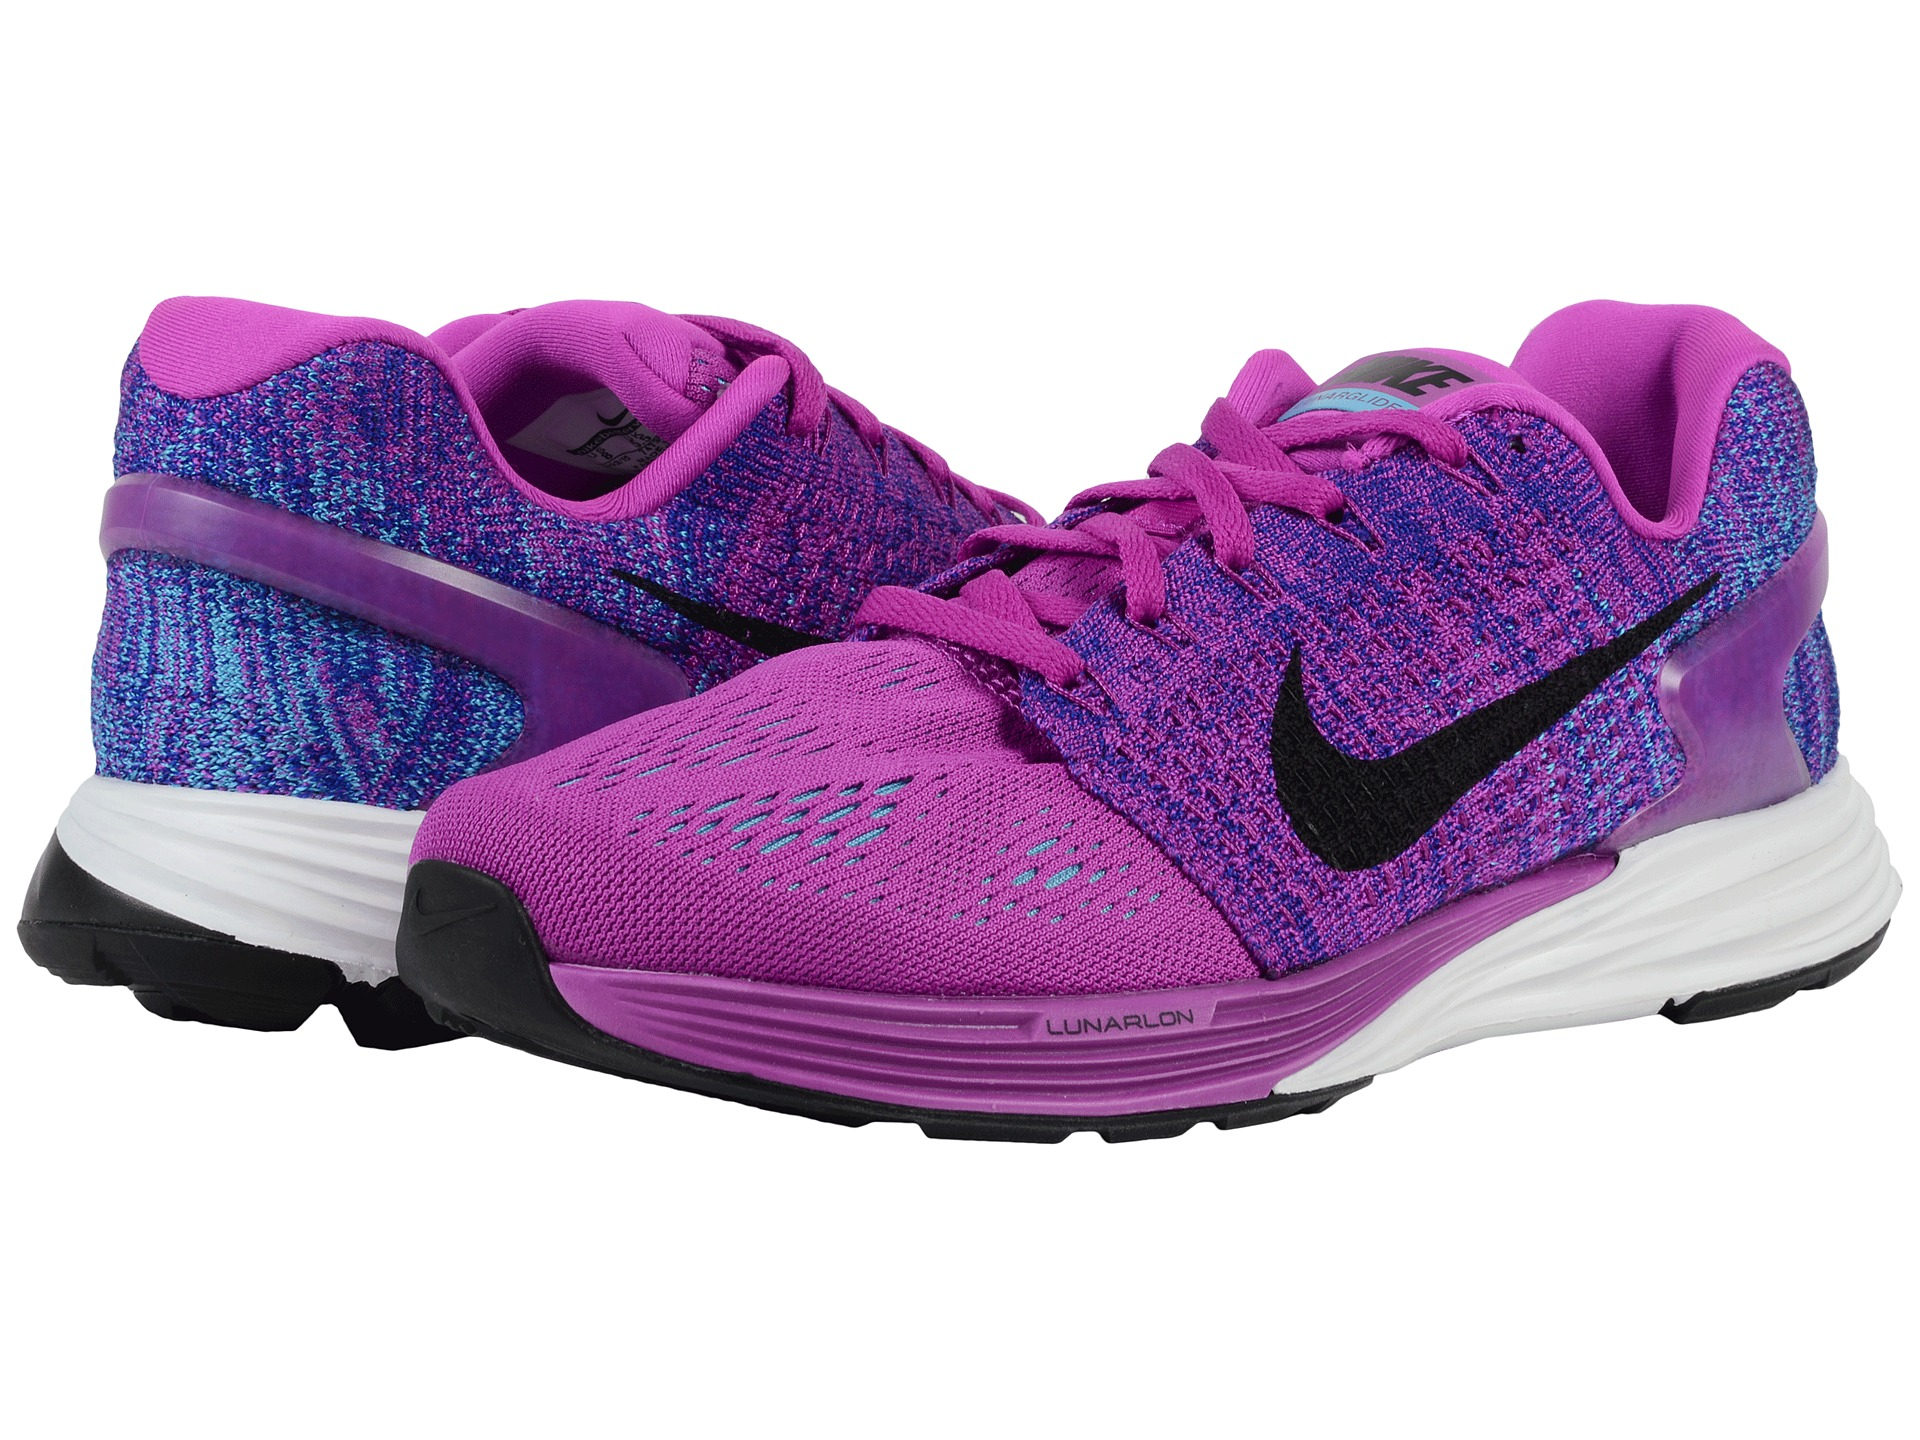 low priced a975c 0a451 ... clearance lyst nike lunarglide 7 in pink 23358 778b2